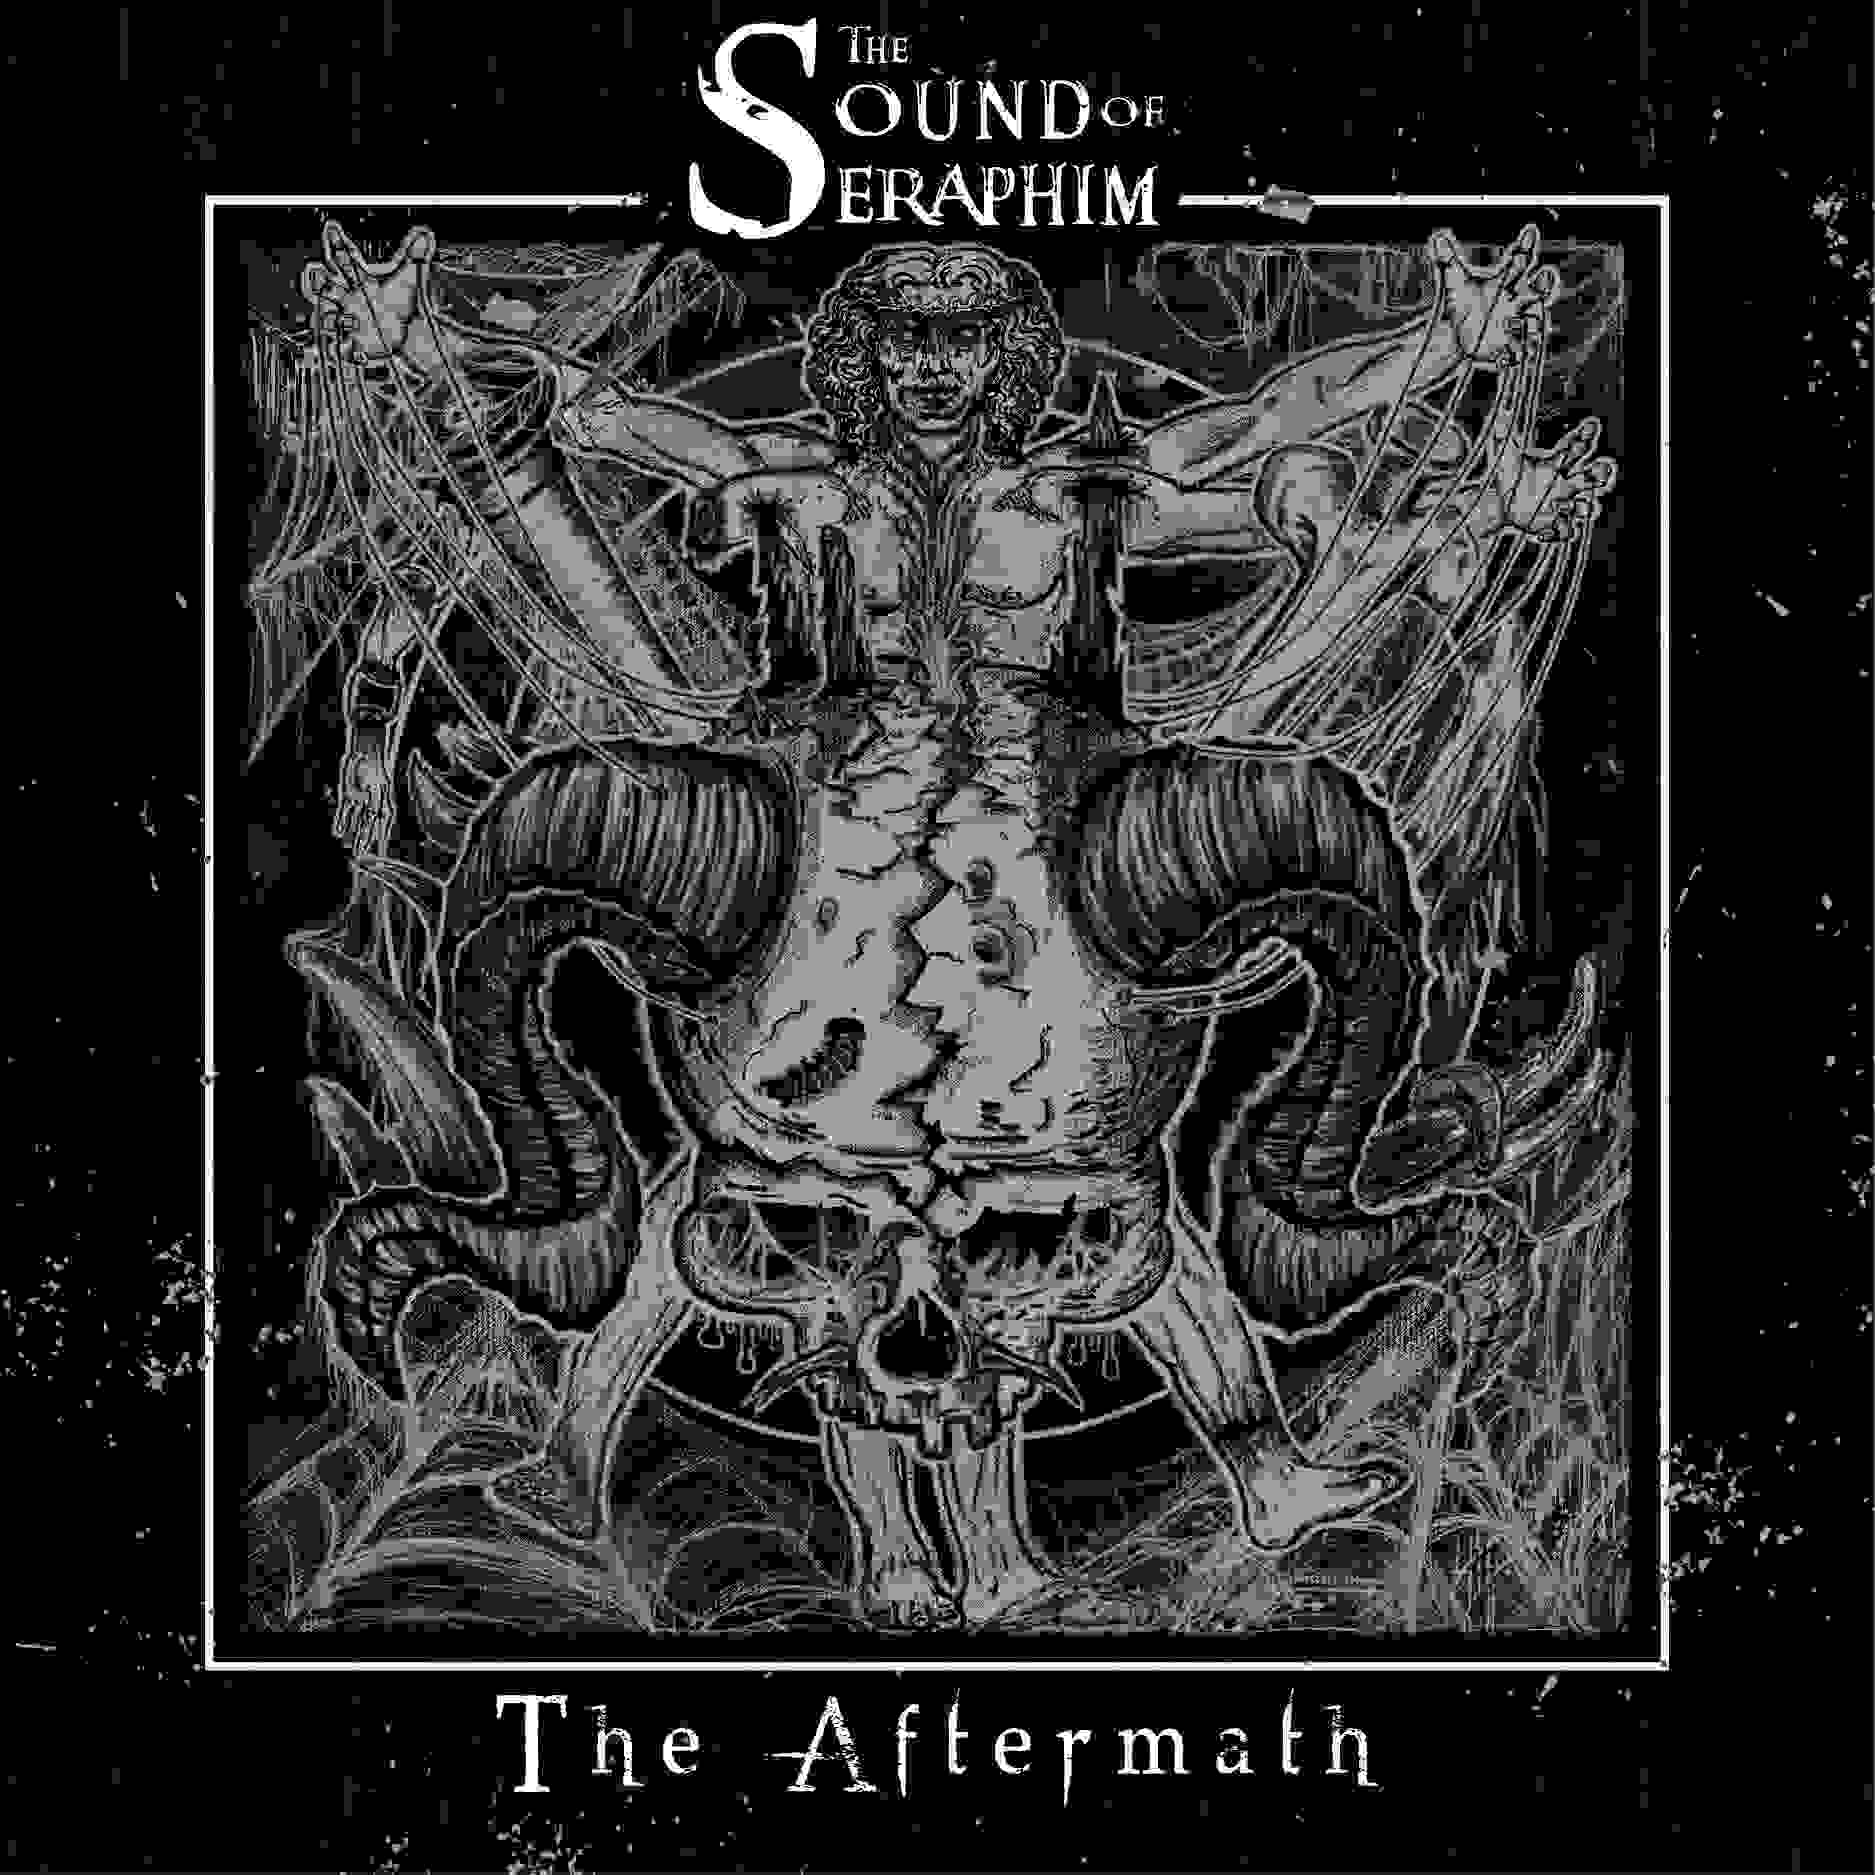 The Sound of Seraphim - The Aftermath